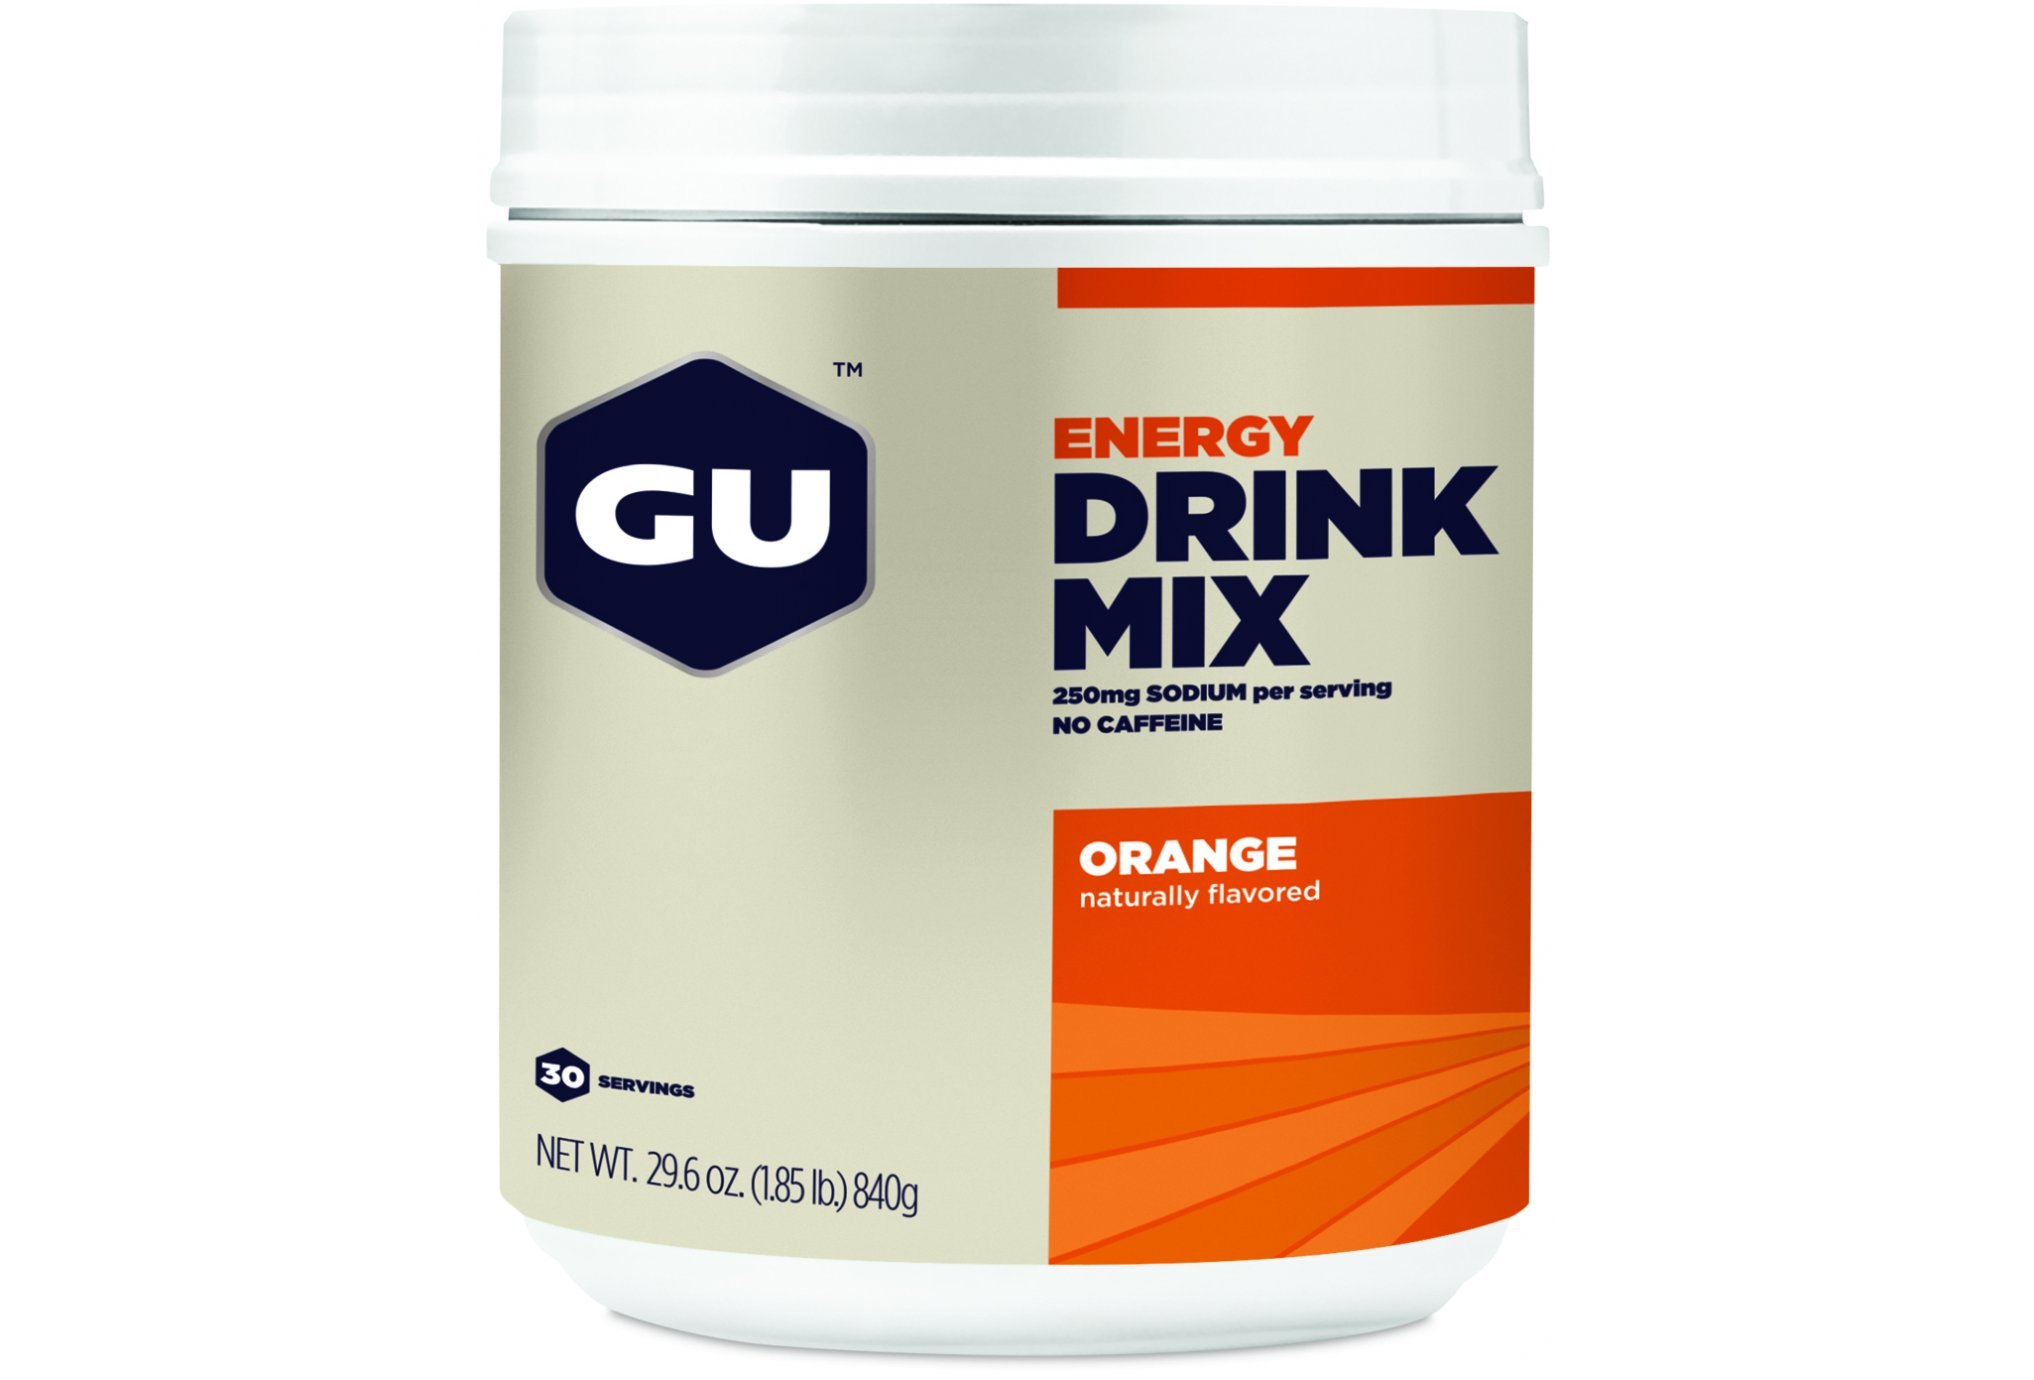 GU Boisson Energy Drink Mix - Orange Diététique Boissons